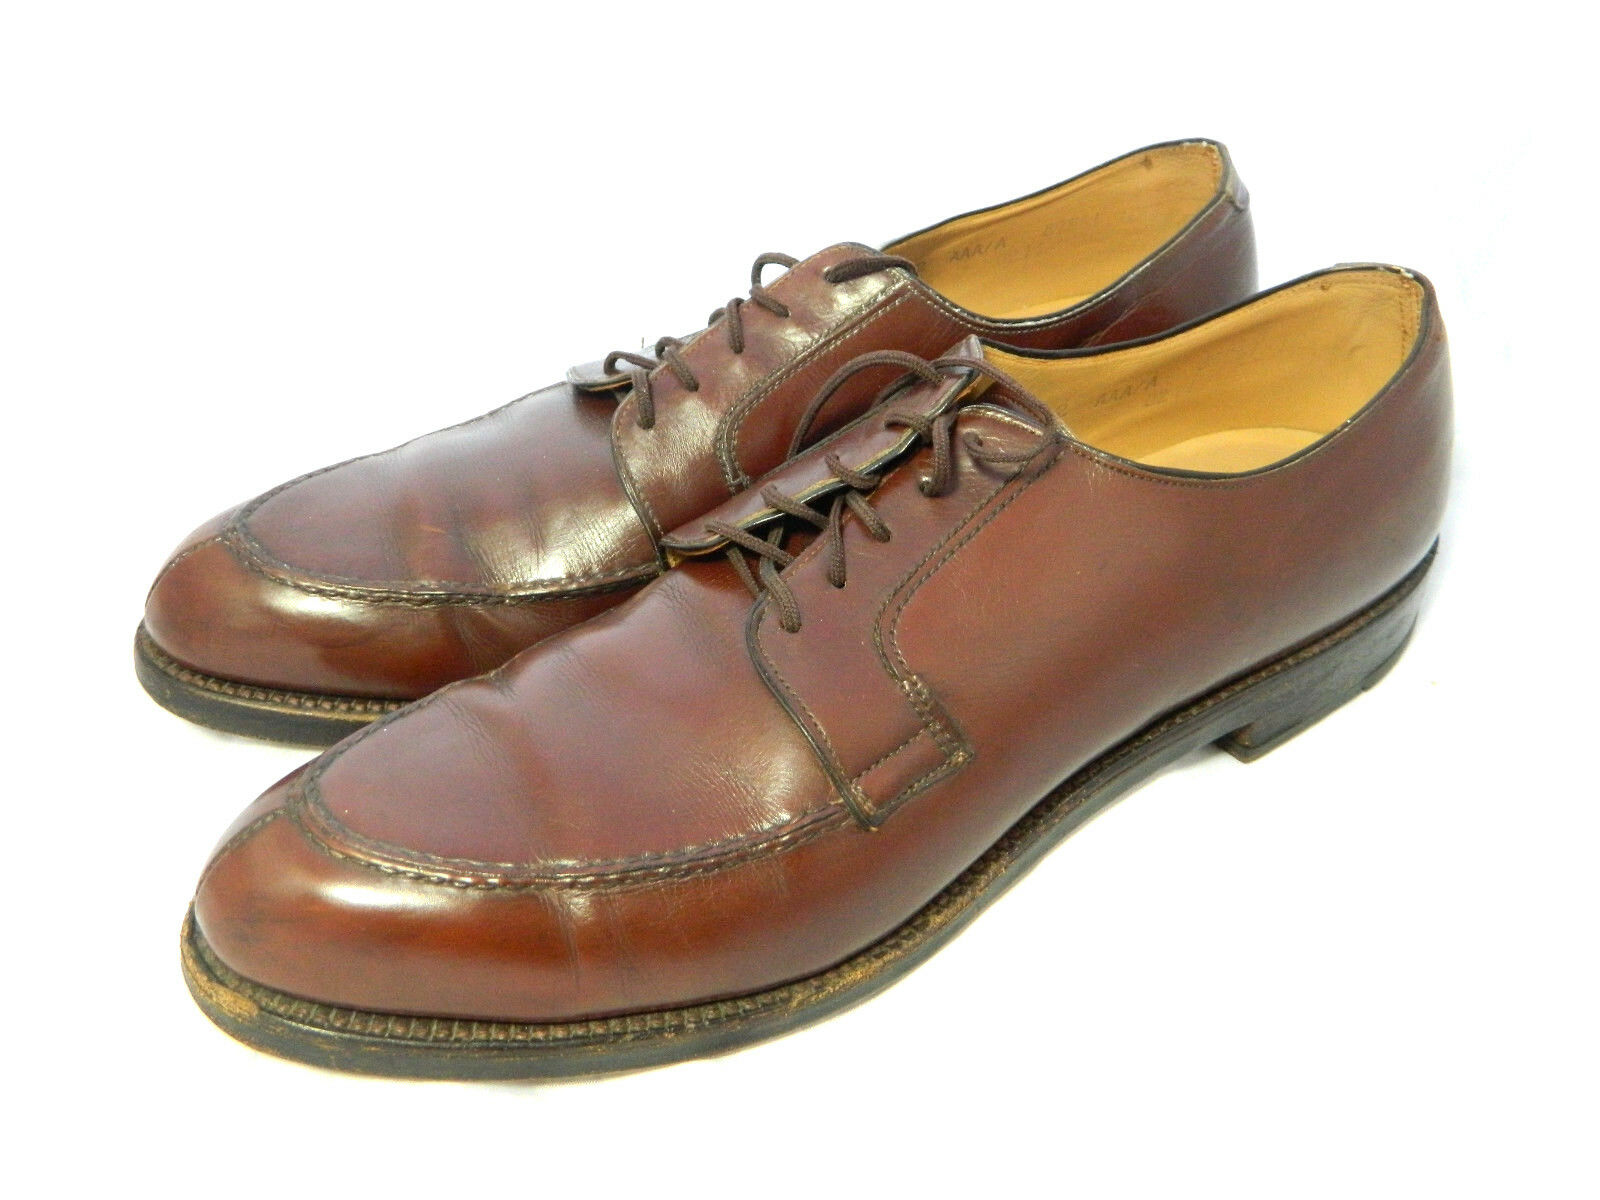 Nettleton Algonquin Traditionals Brown Leather Split Toe Oxford Shoes Sz 12 AAA Scarpe classiche da uomo